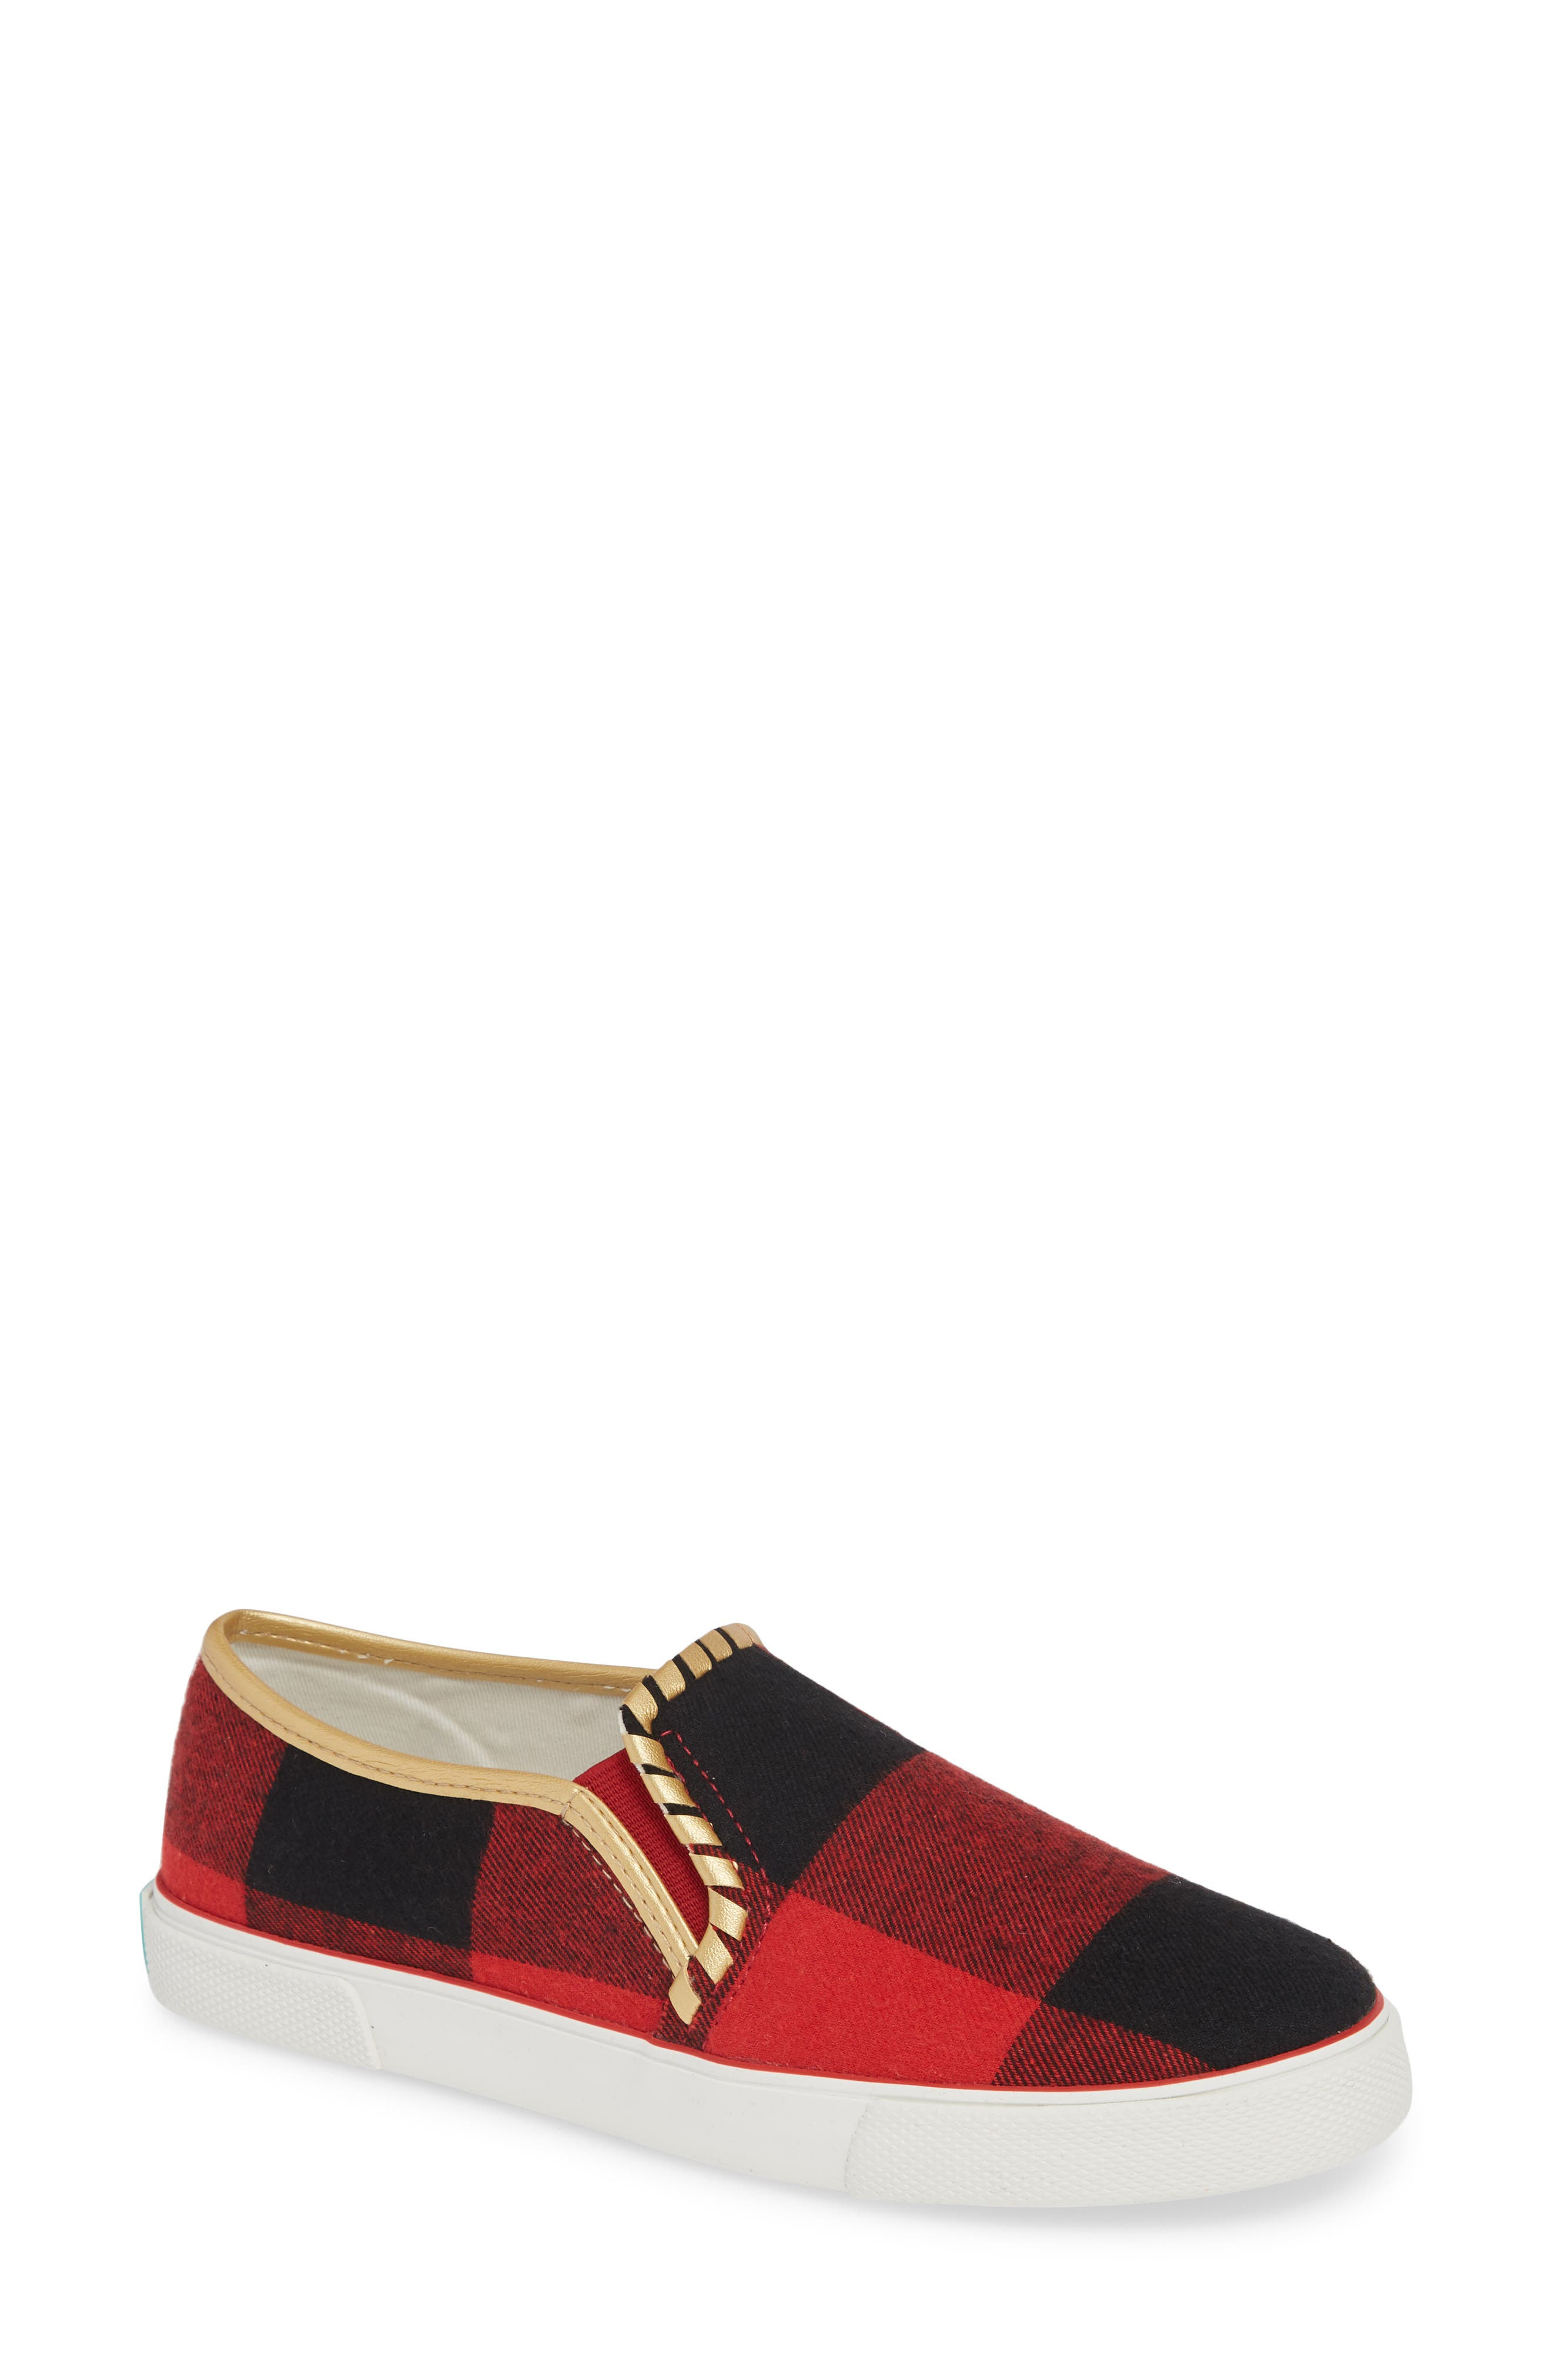 Brynne Slip-On Sneaker,                         Main,                         color, RED/ BLACK FABRIC